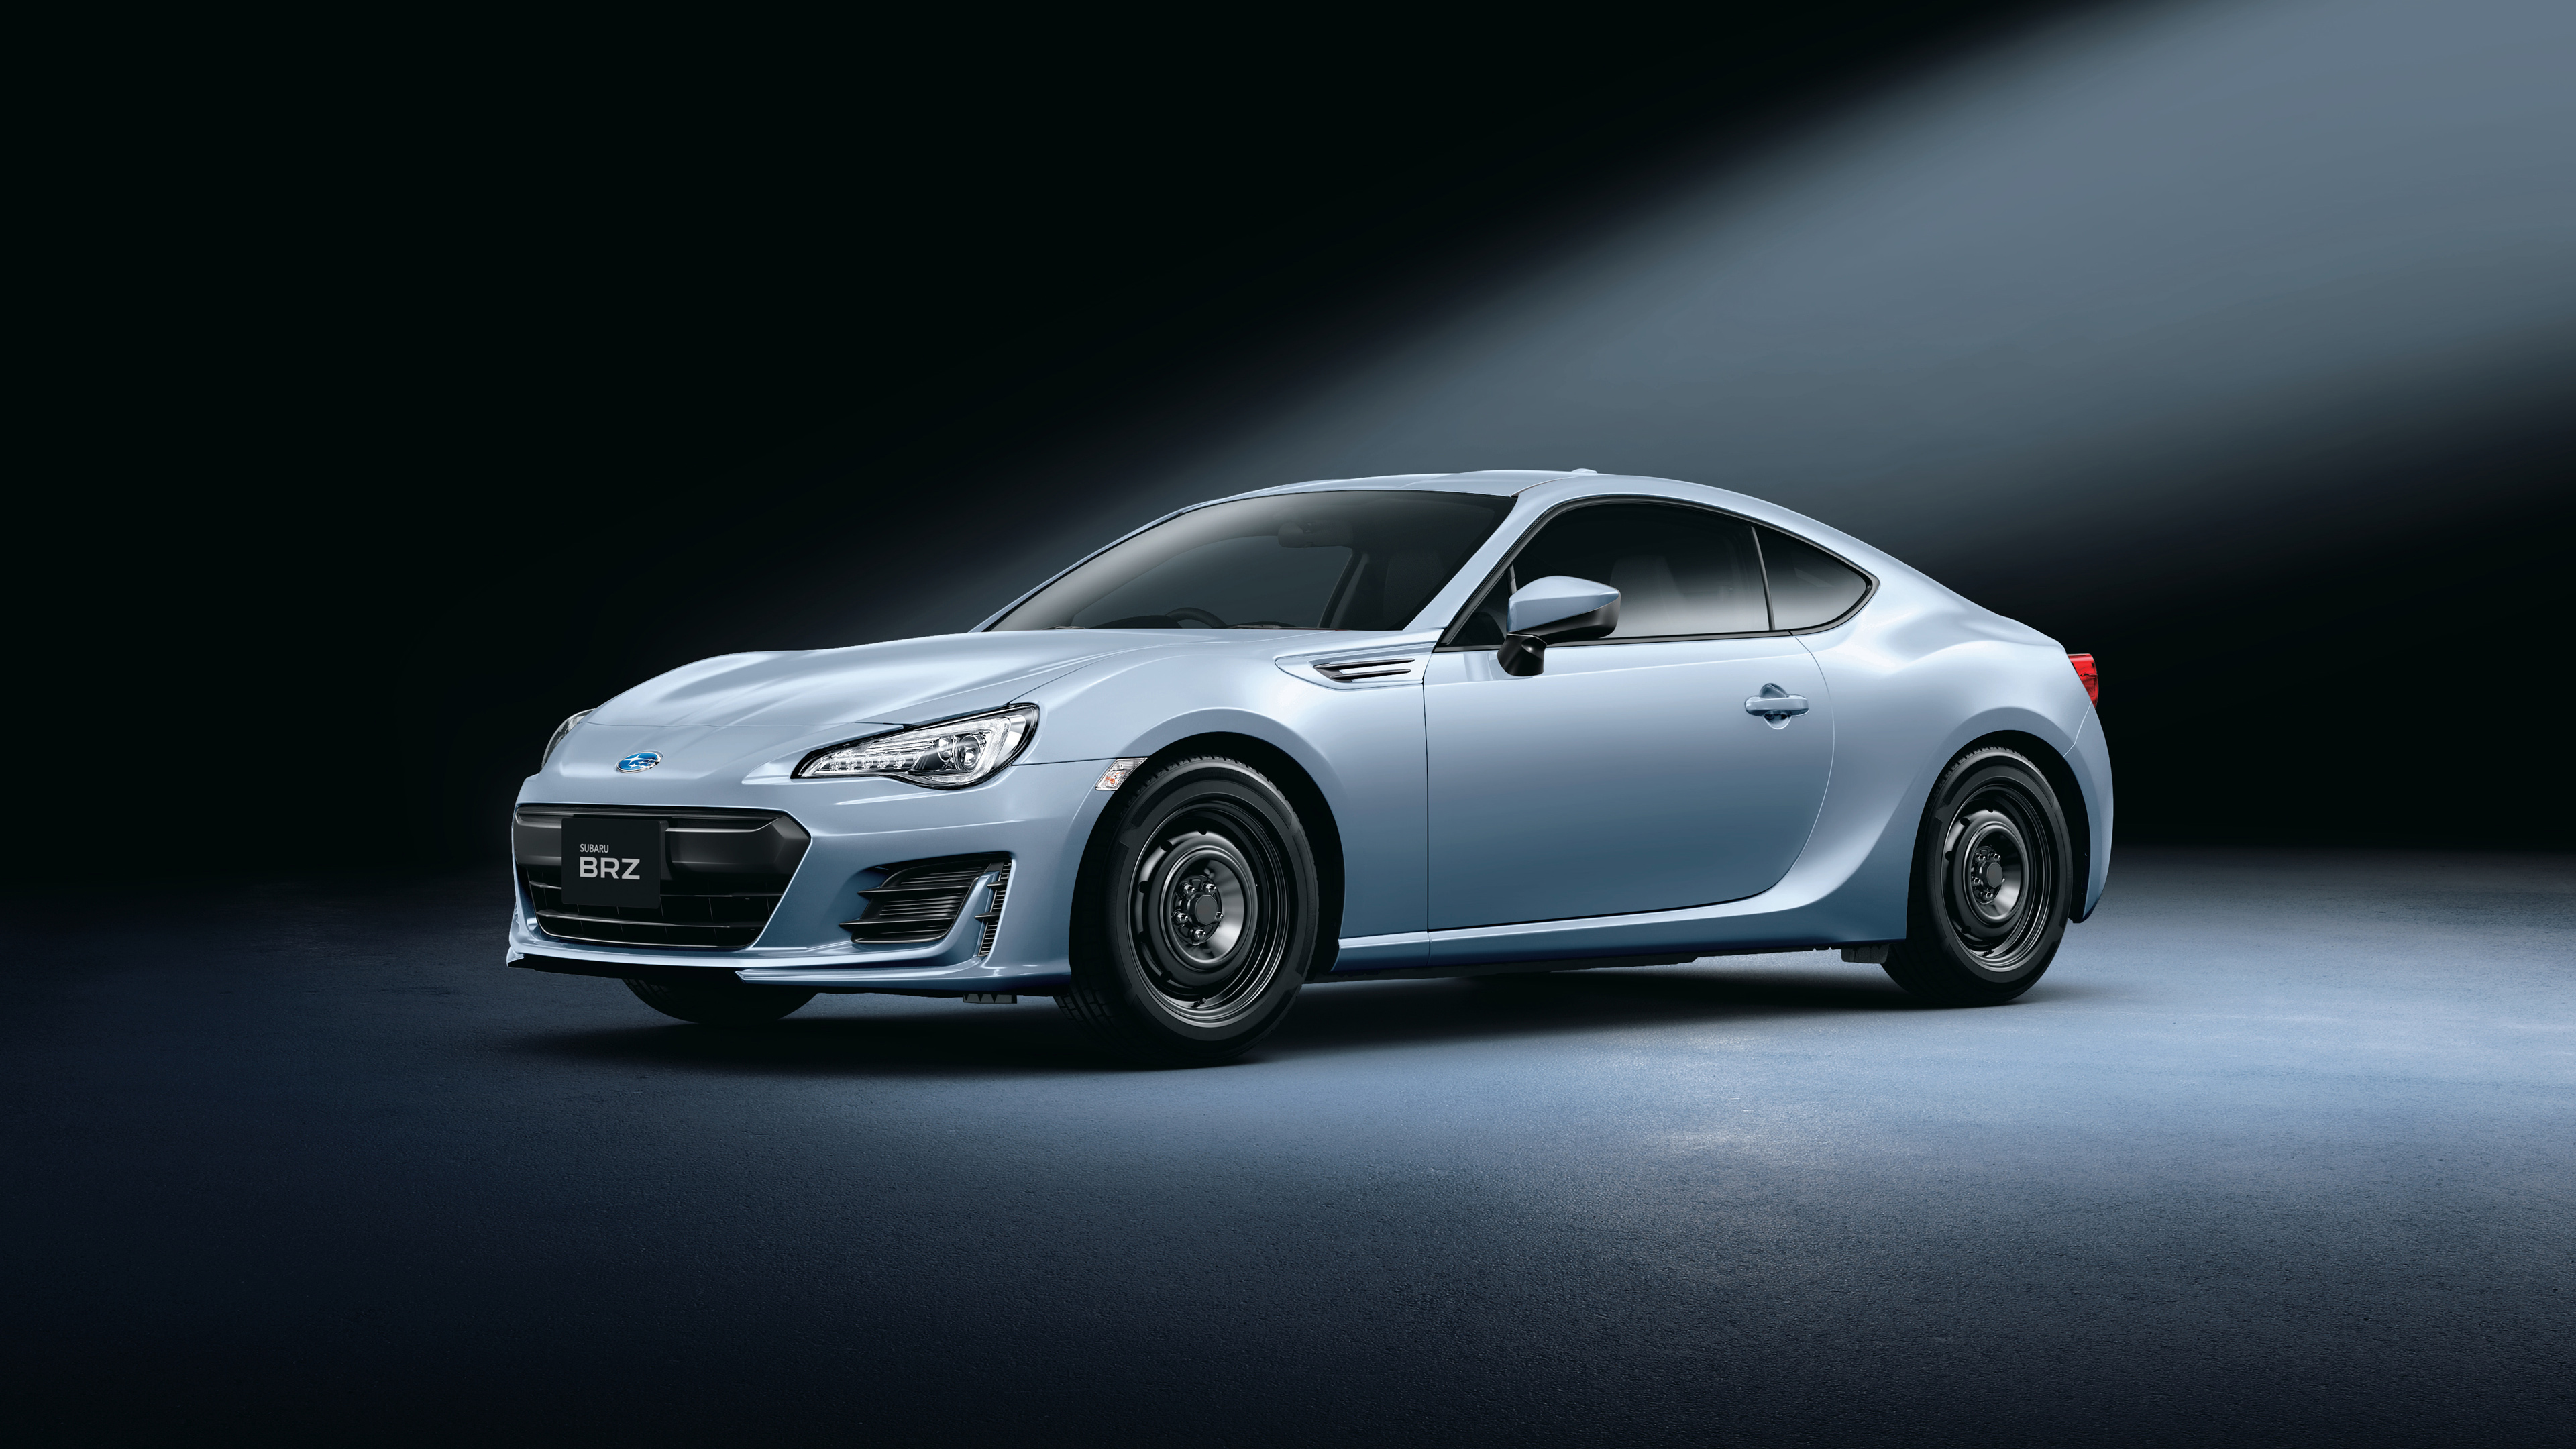 2016 Subaru BRZ Wallpaper